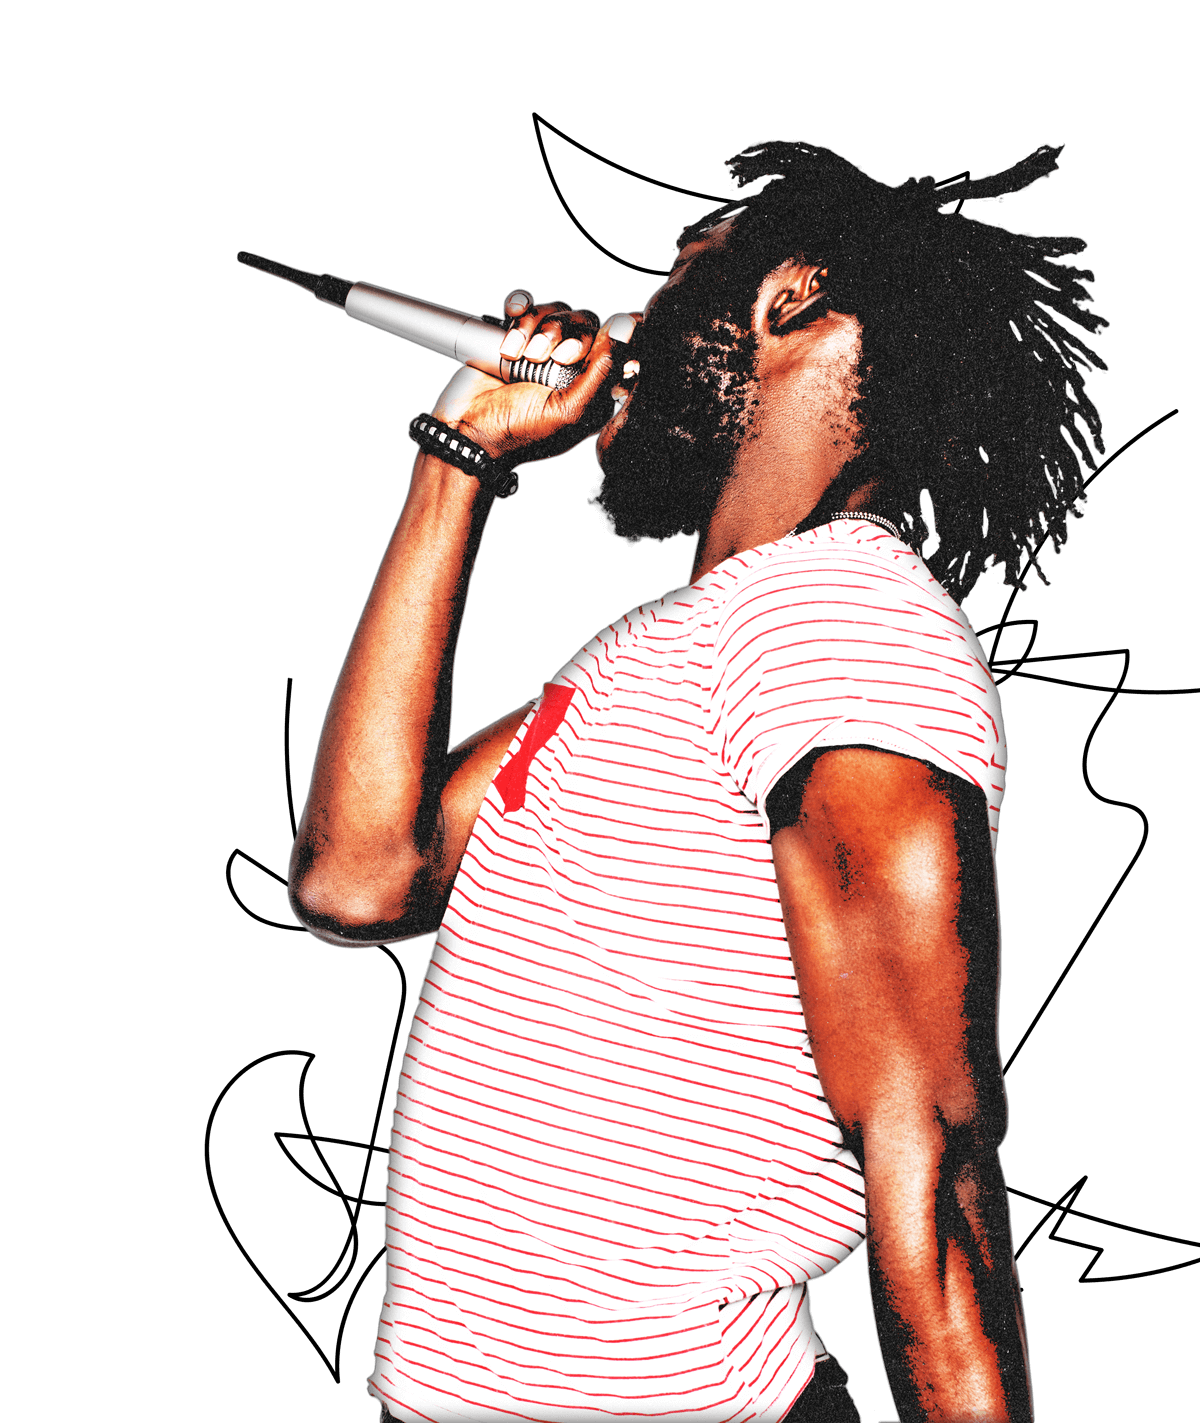 Black artist performing energetically with microphone in-hand.